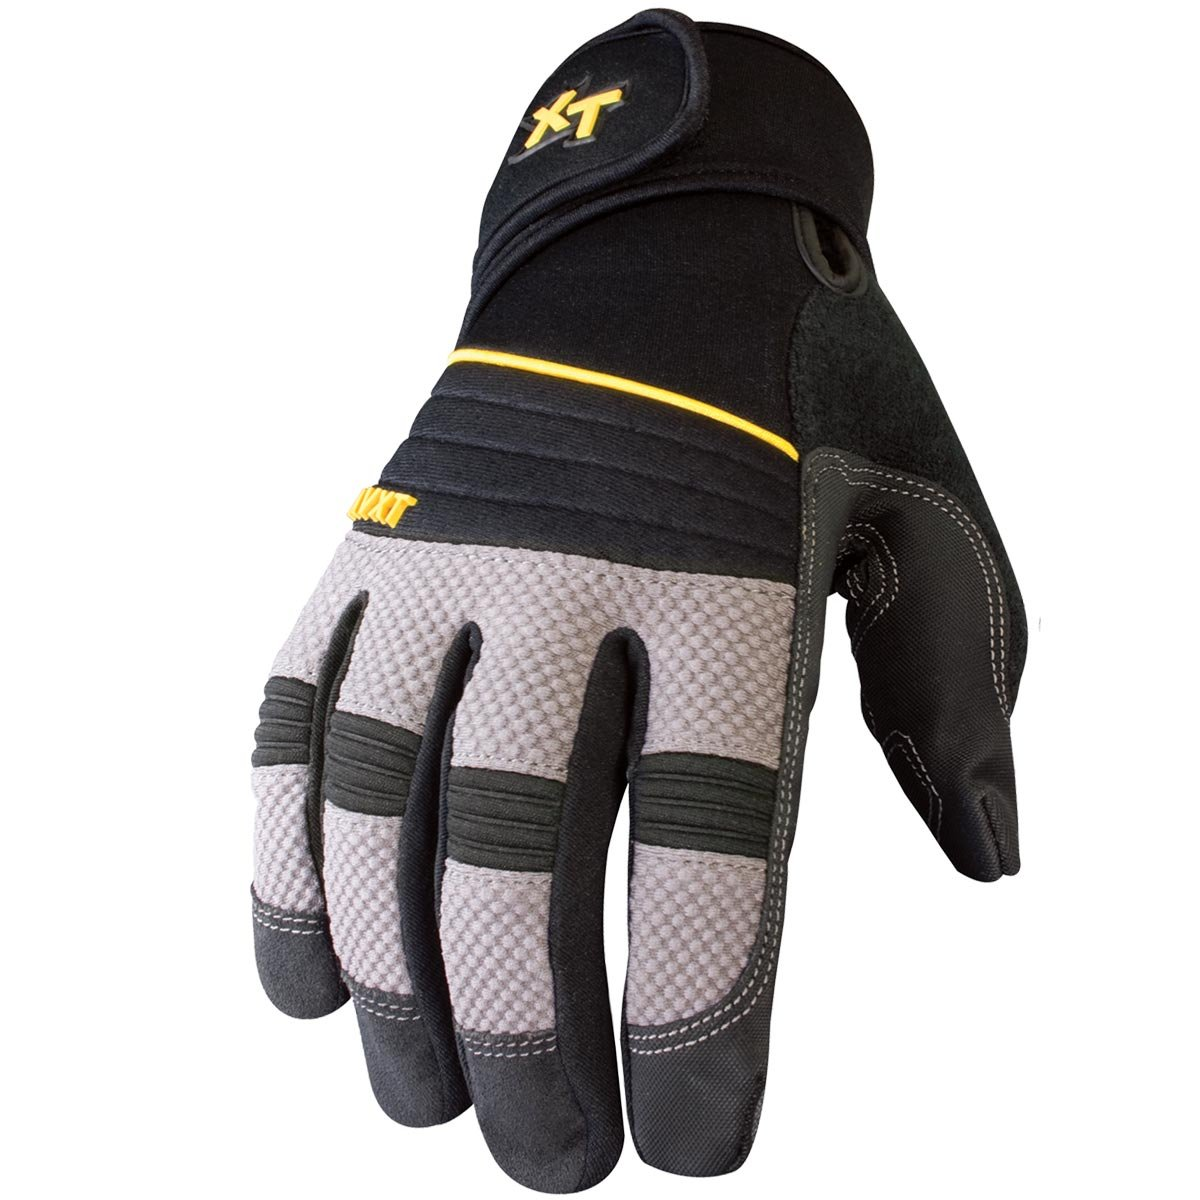 Youngstown Glove 03-3200-78-L Anti-Vibe XT Performance Glove Large